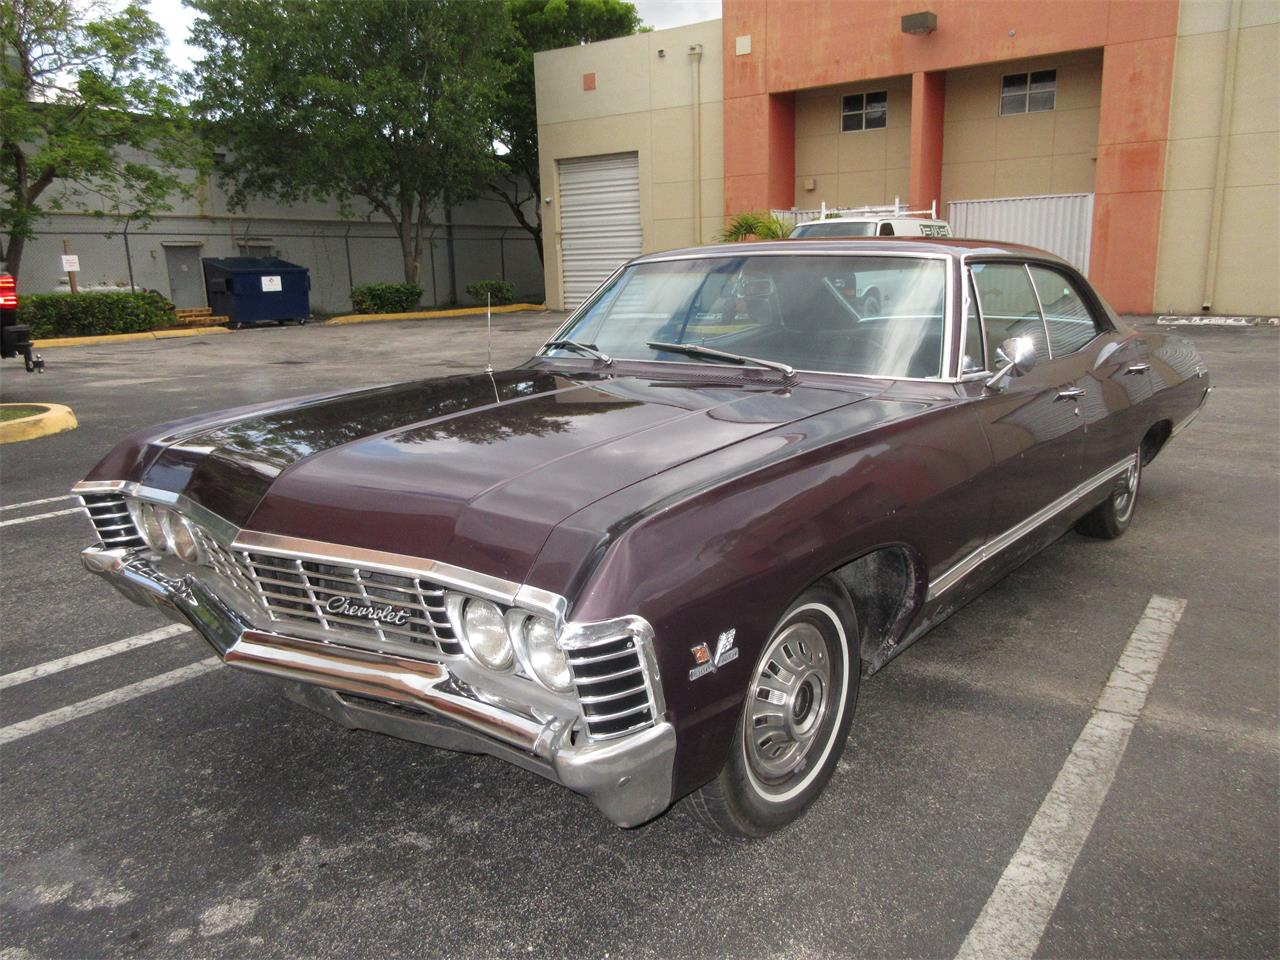 Large Picture of Classic '67 Chevrolet Impala located in Florida Offered by a Private Seller - QAJV